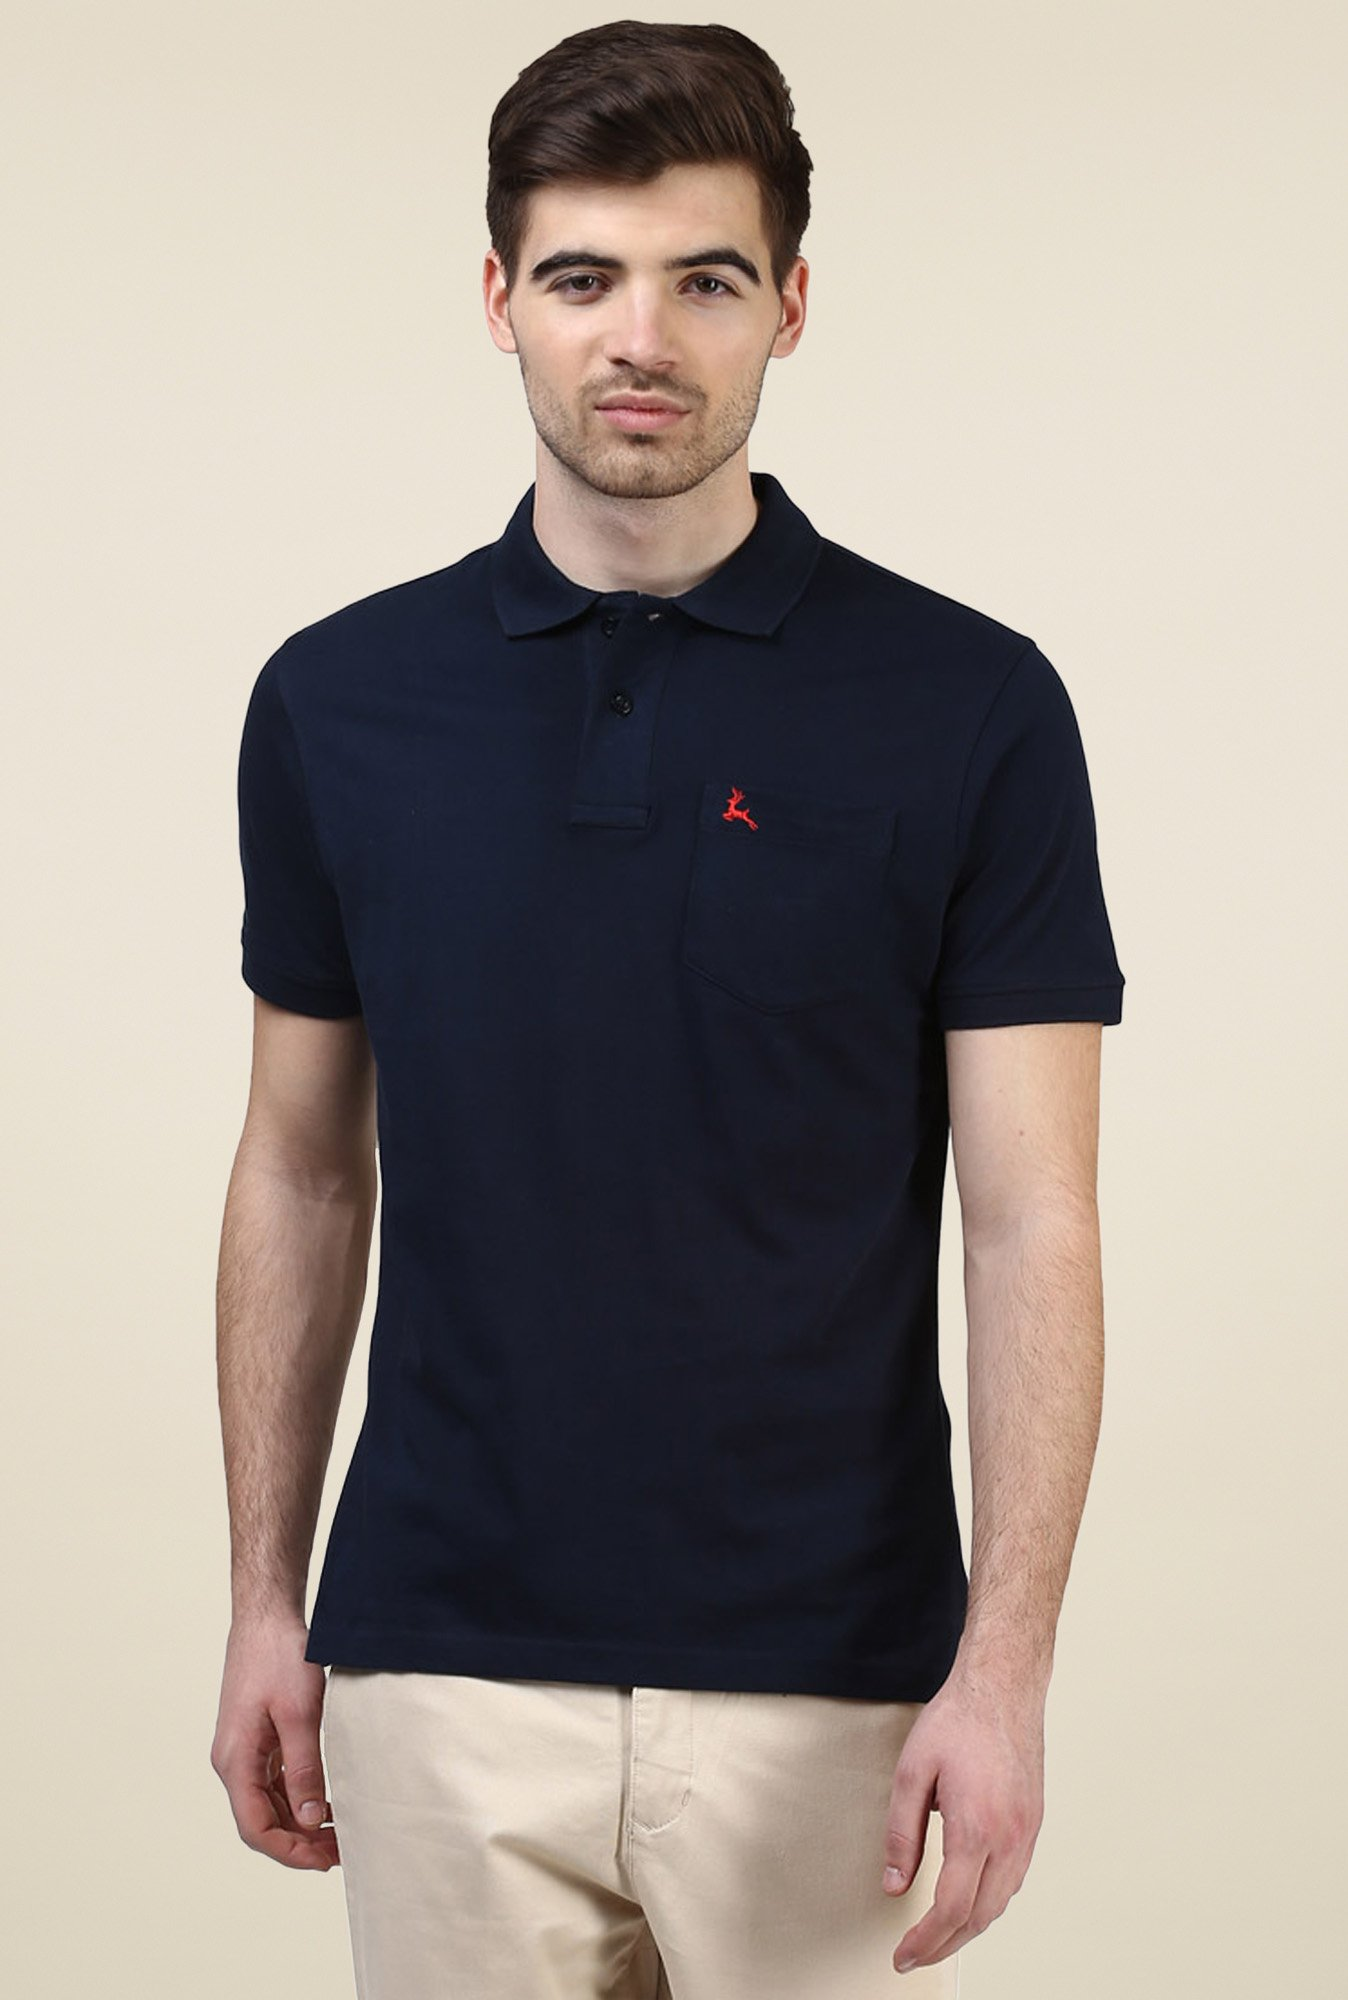 Parx Navy Half Sleeves Cotton Polo T-Shirt